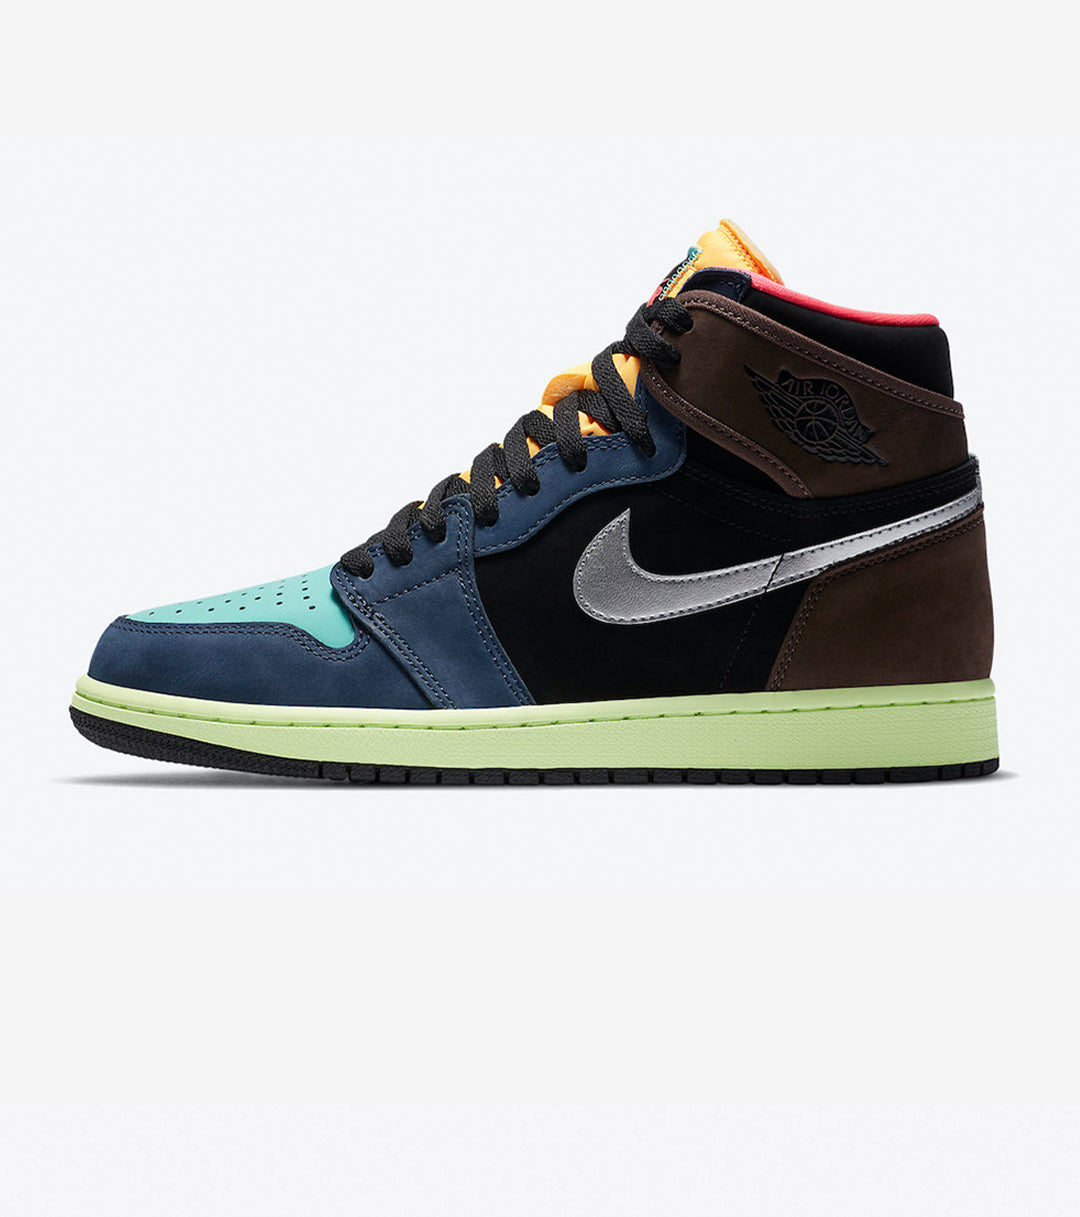 "Air Jordan 1 Retro High OG ""Tokyo Bio Hack"" - Men's Shoe"